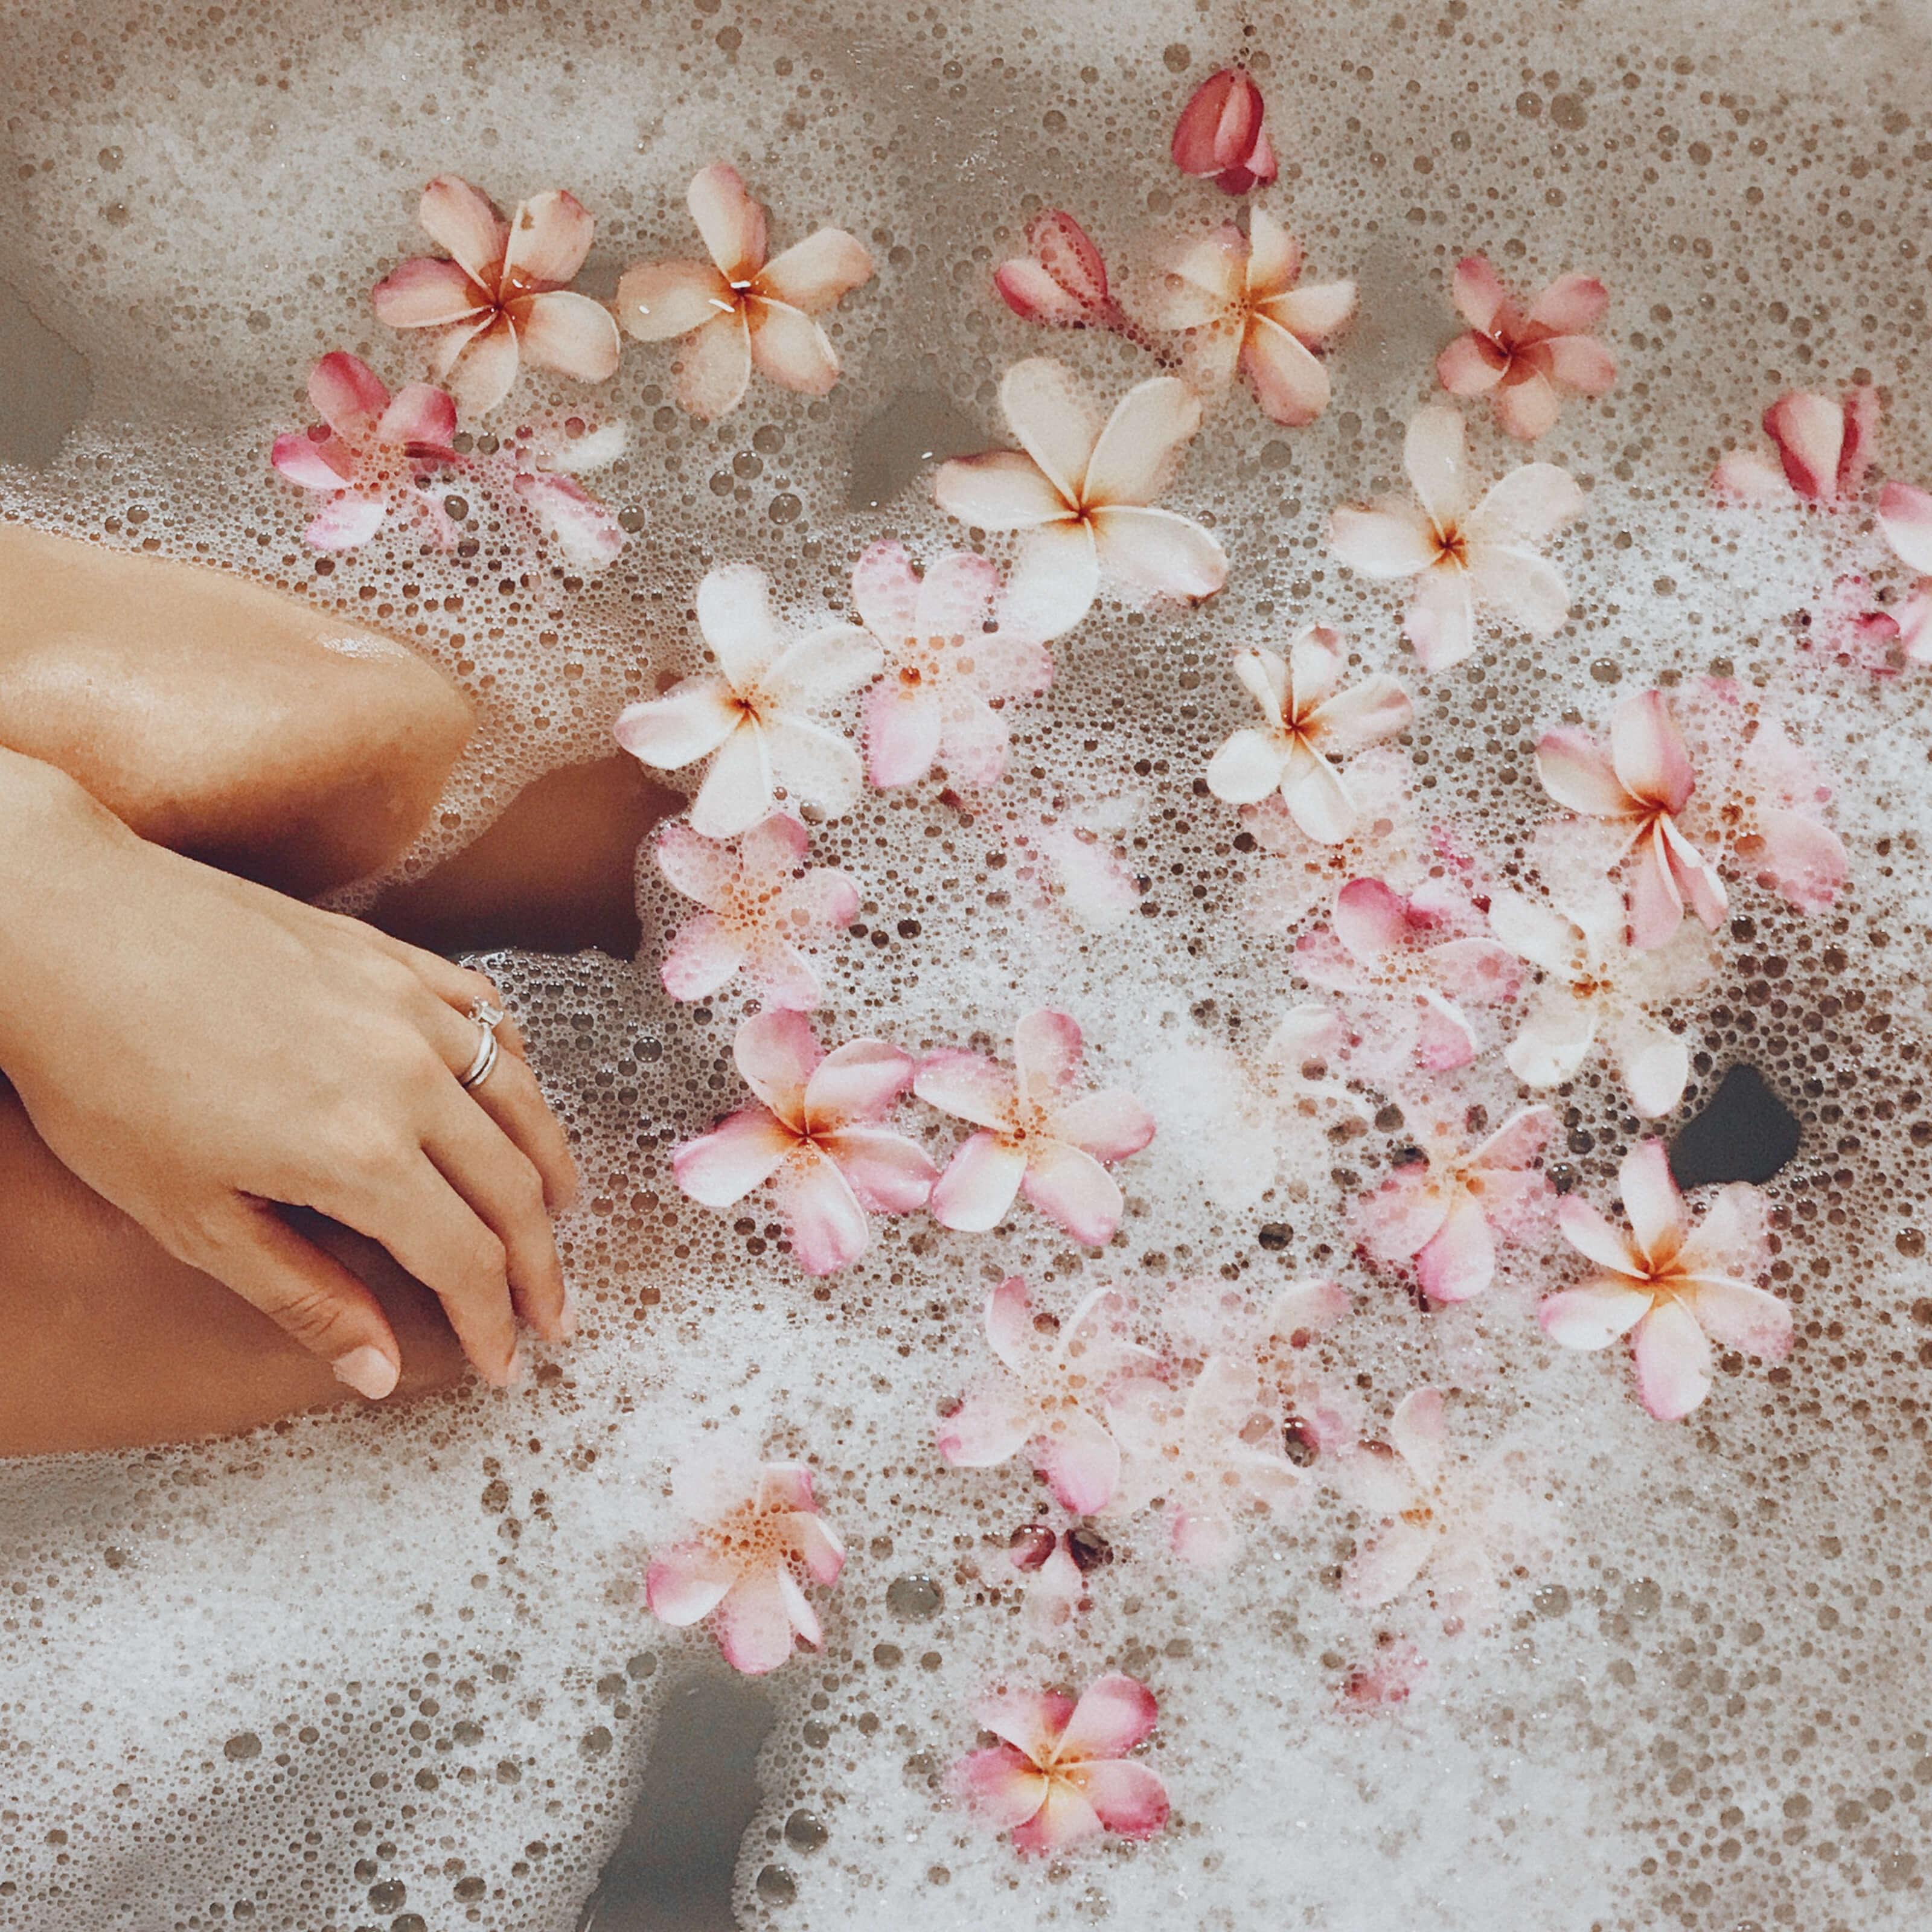 5 Ways Baths Are Good For Your Body and Soul